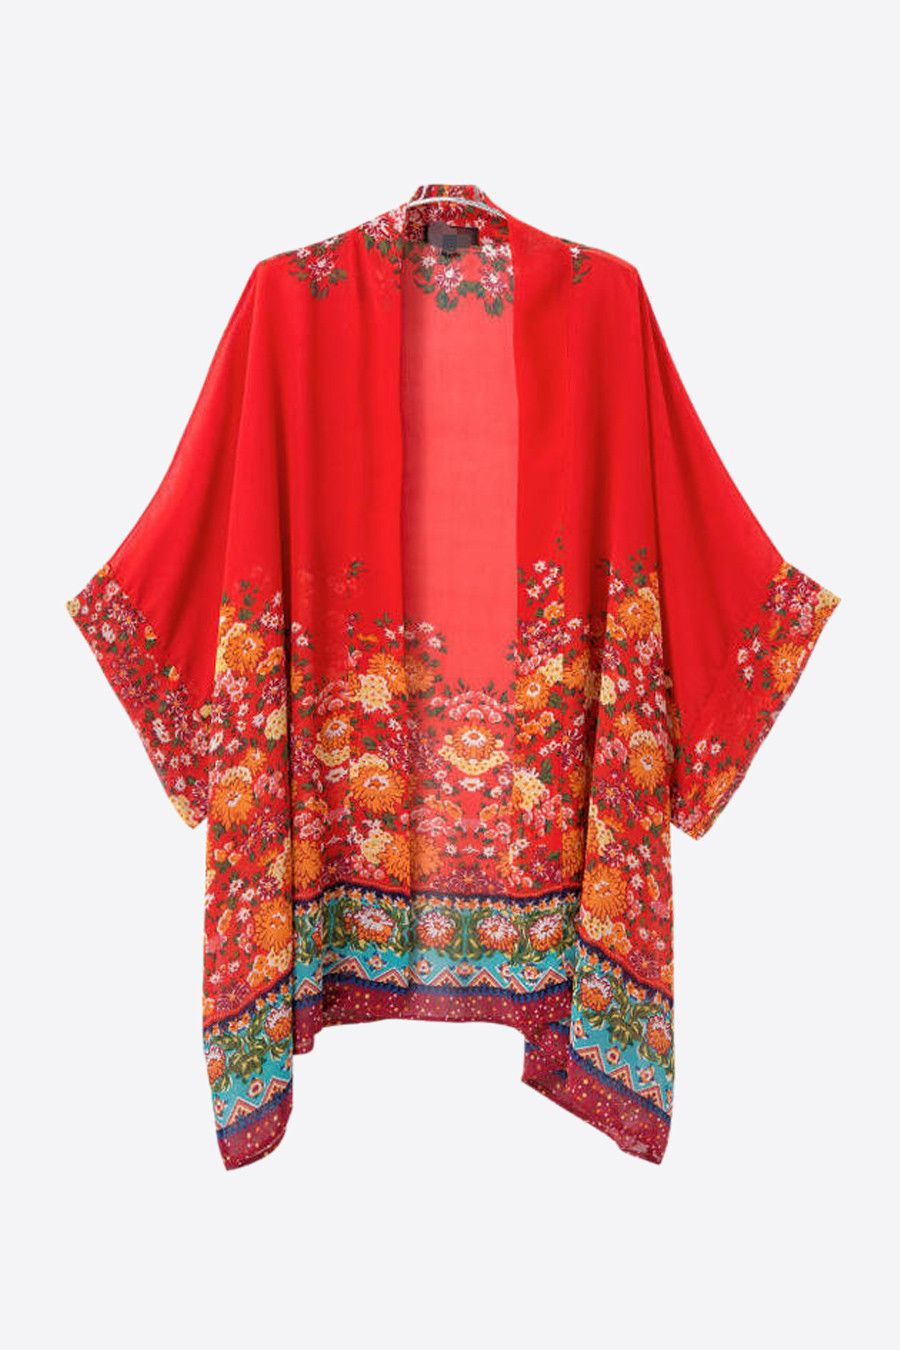 Retro Red Floral Printed Kimono | Nice, Floral prints and Colors